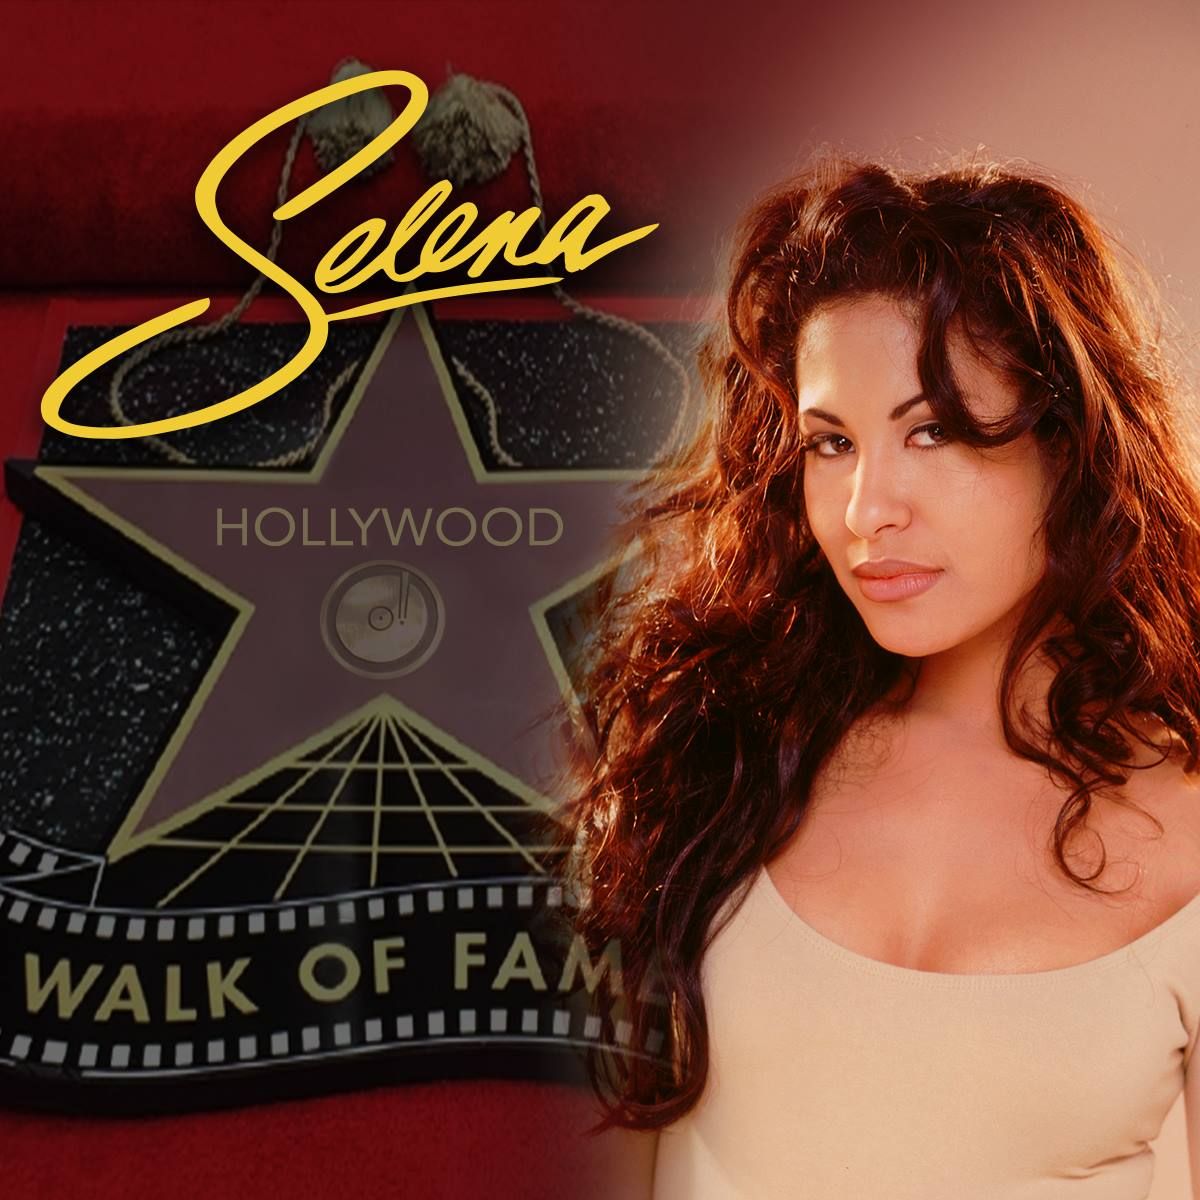 Selena's Star - Hollywood Walk of Fame